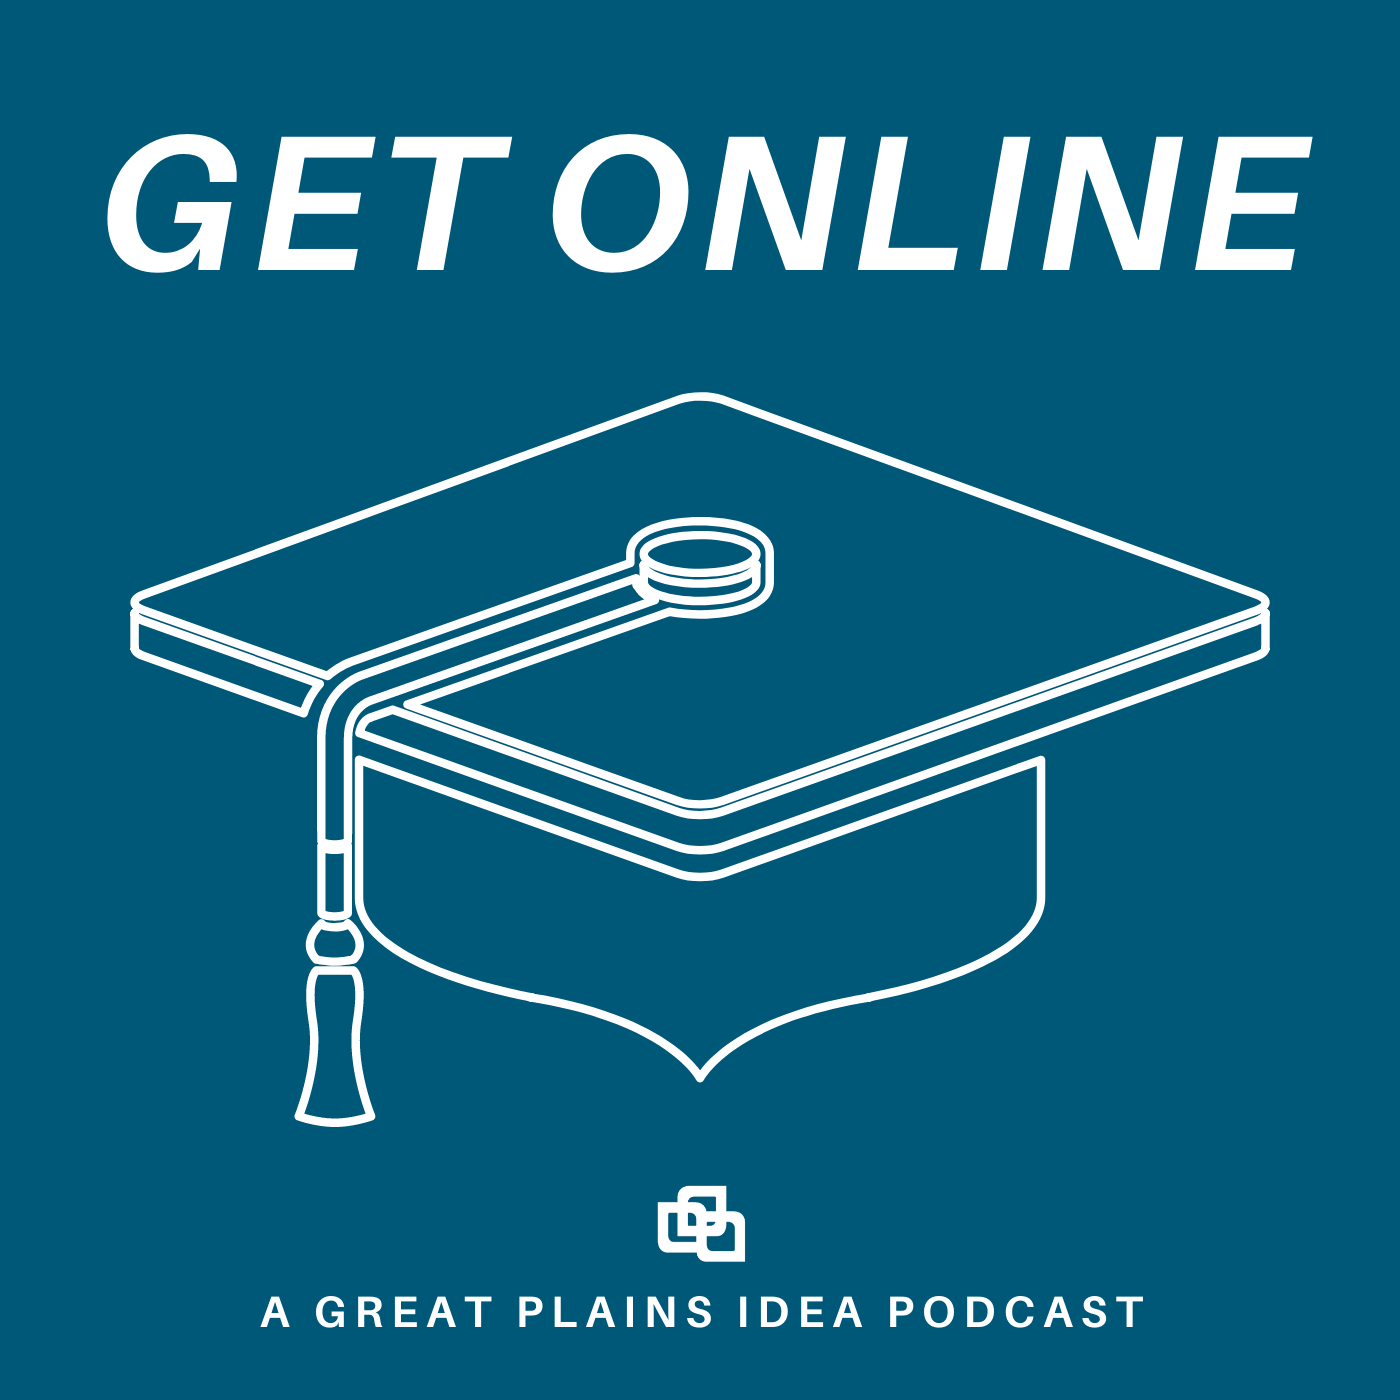 Podcast logo with graduation cap and title Get Online